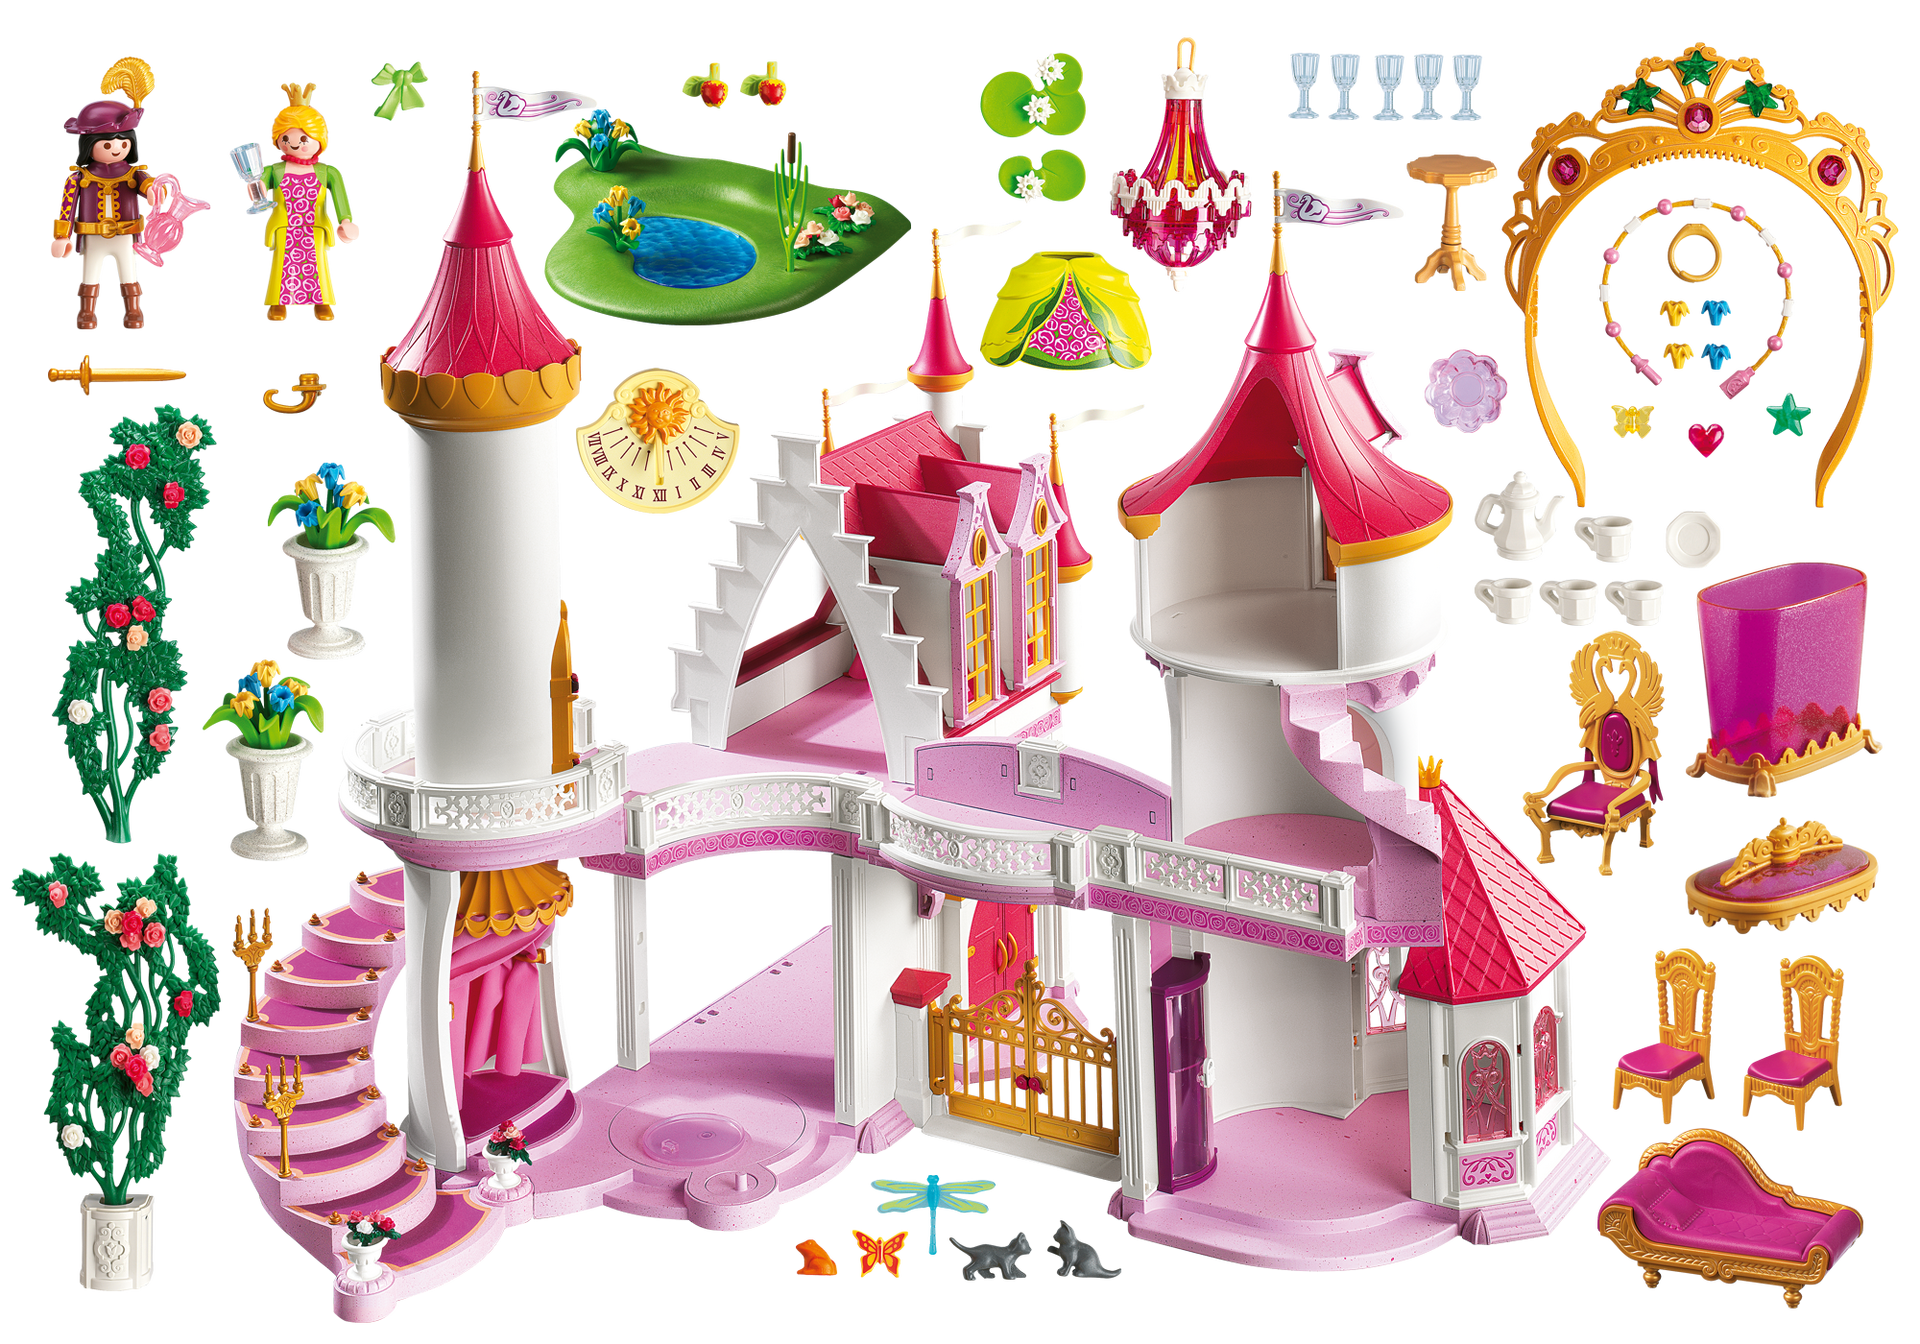 Palacio de princesas 5142 playmobil espa a for Playmobil princesse 5142